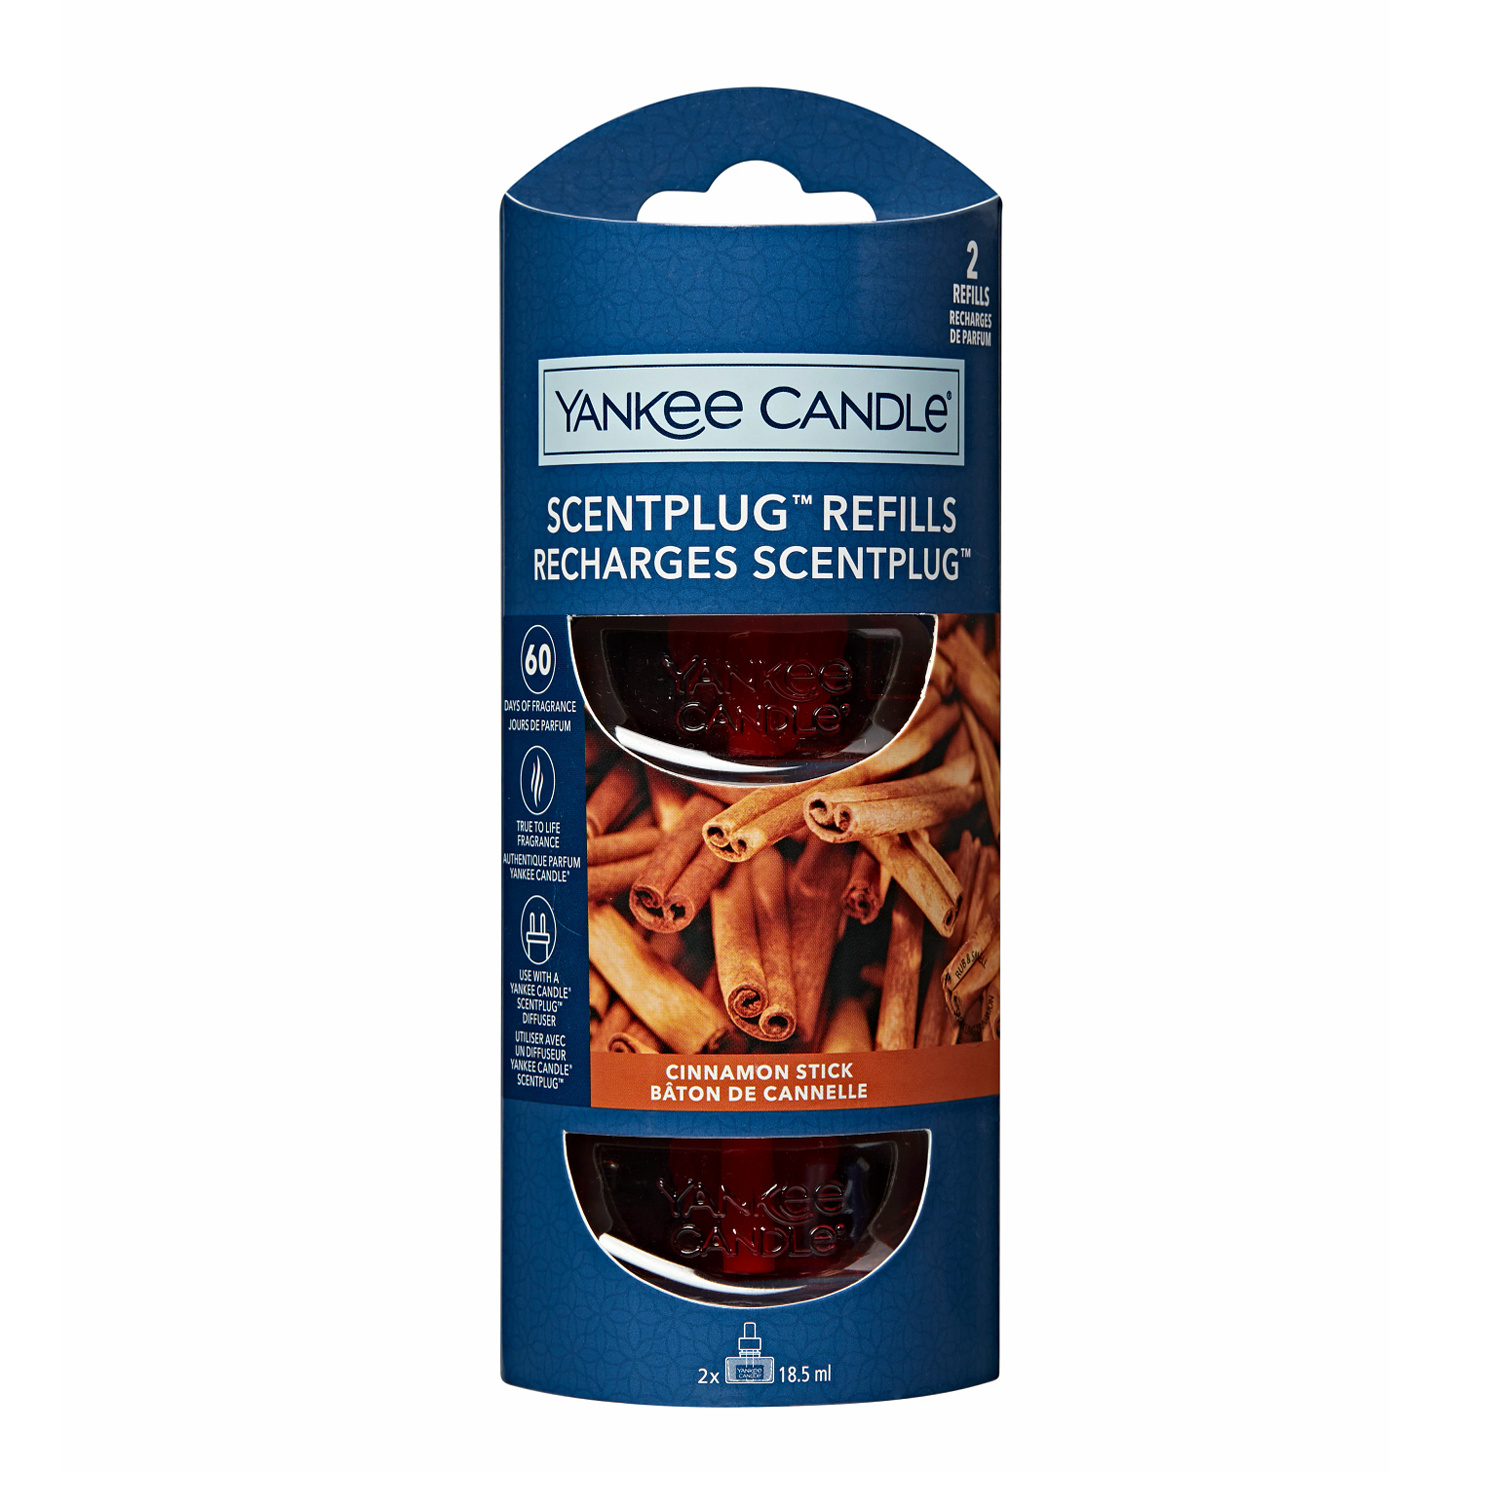 Yankee Candle - Cinnamon Stick 2-Pack Scentplug Refill